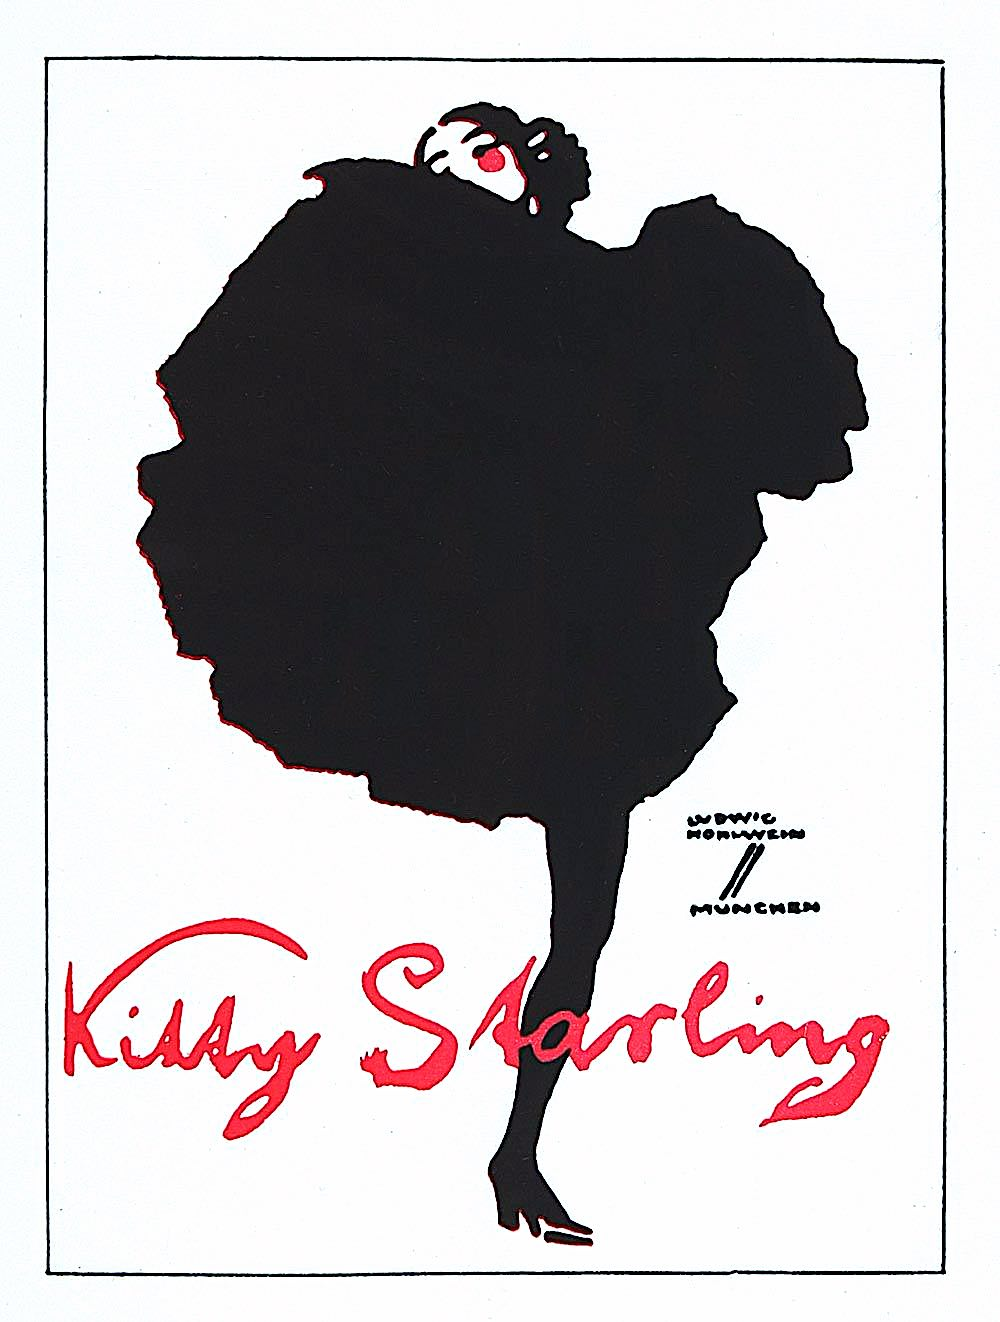 a Ludwig Hohlwein 1921 poster for Kissy Starling